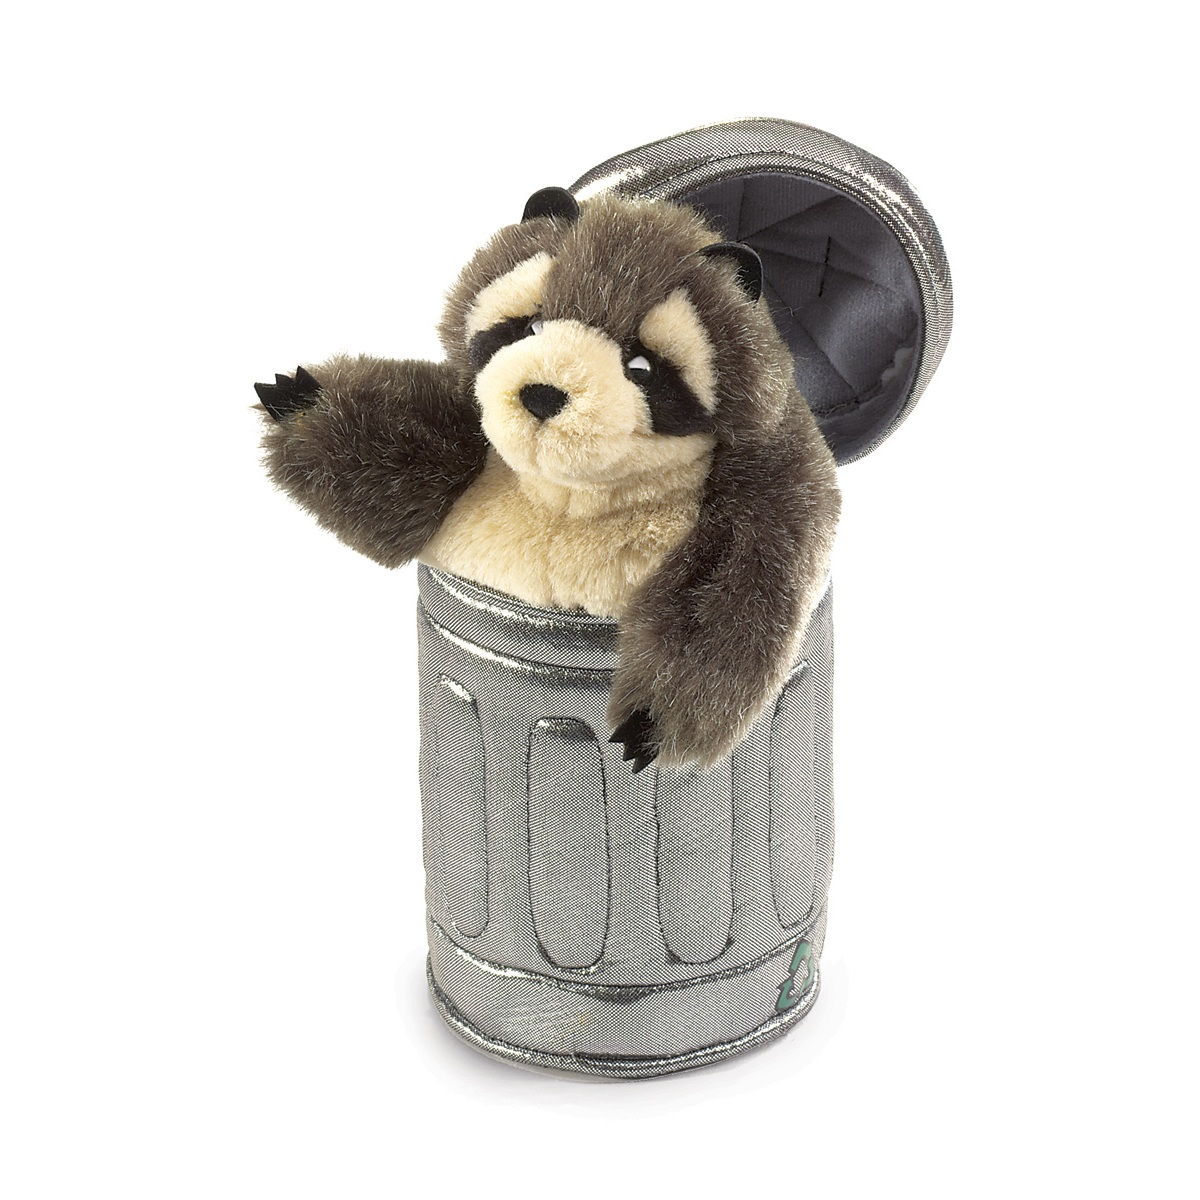 Raccoon in Garbage Can Puppet by Folkmanis